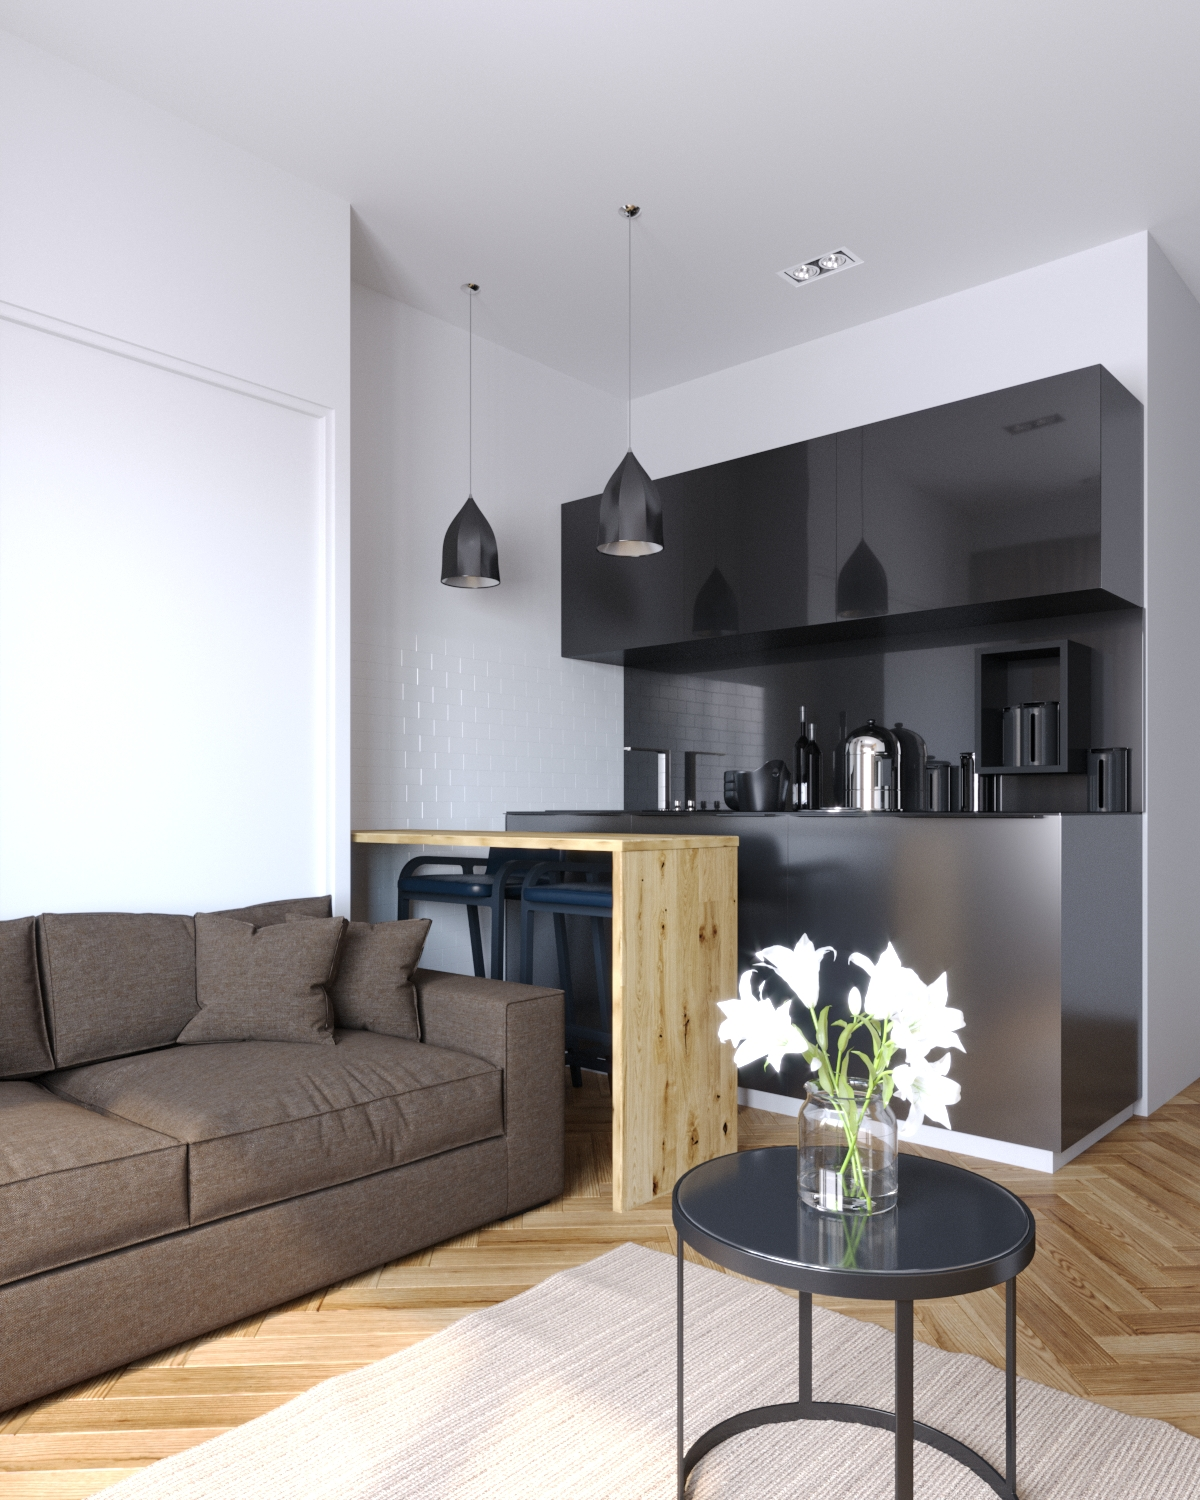 test interior in 3d max corona render image